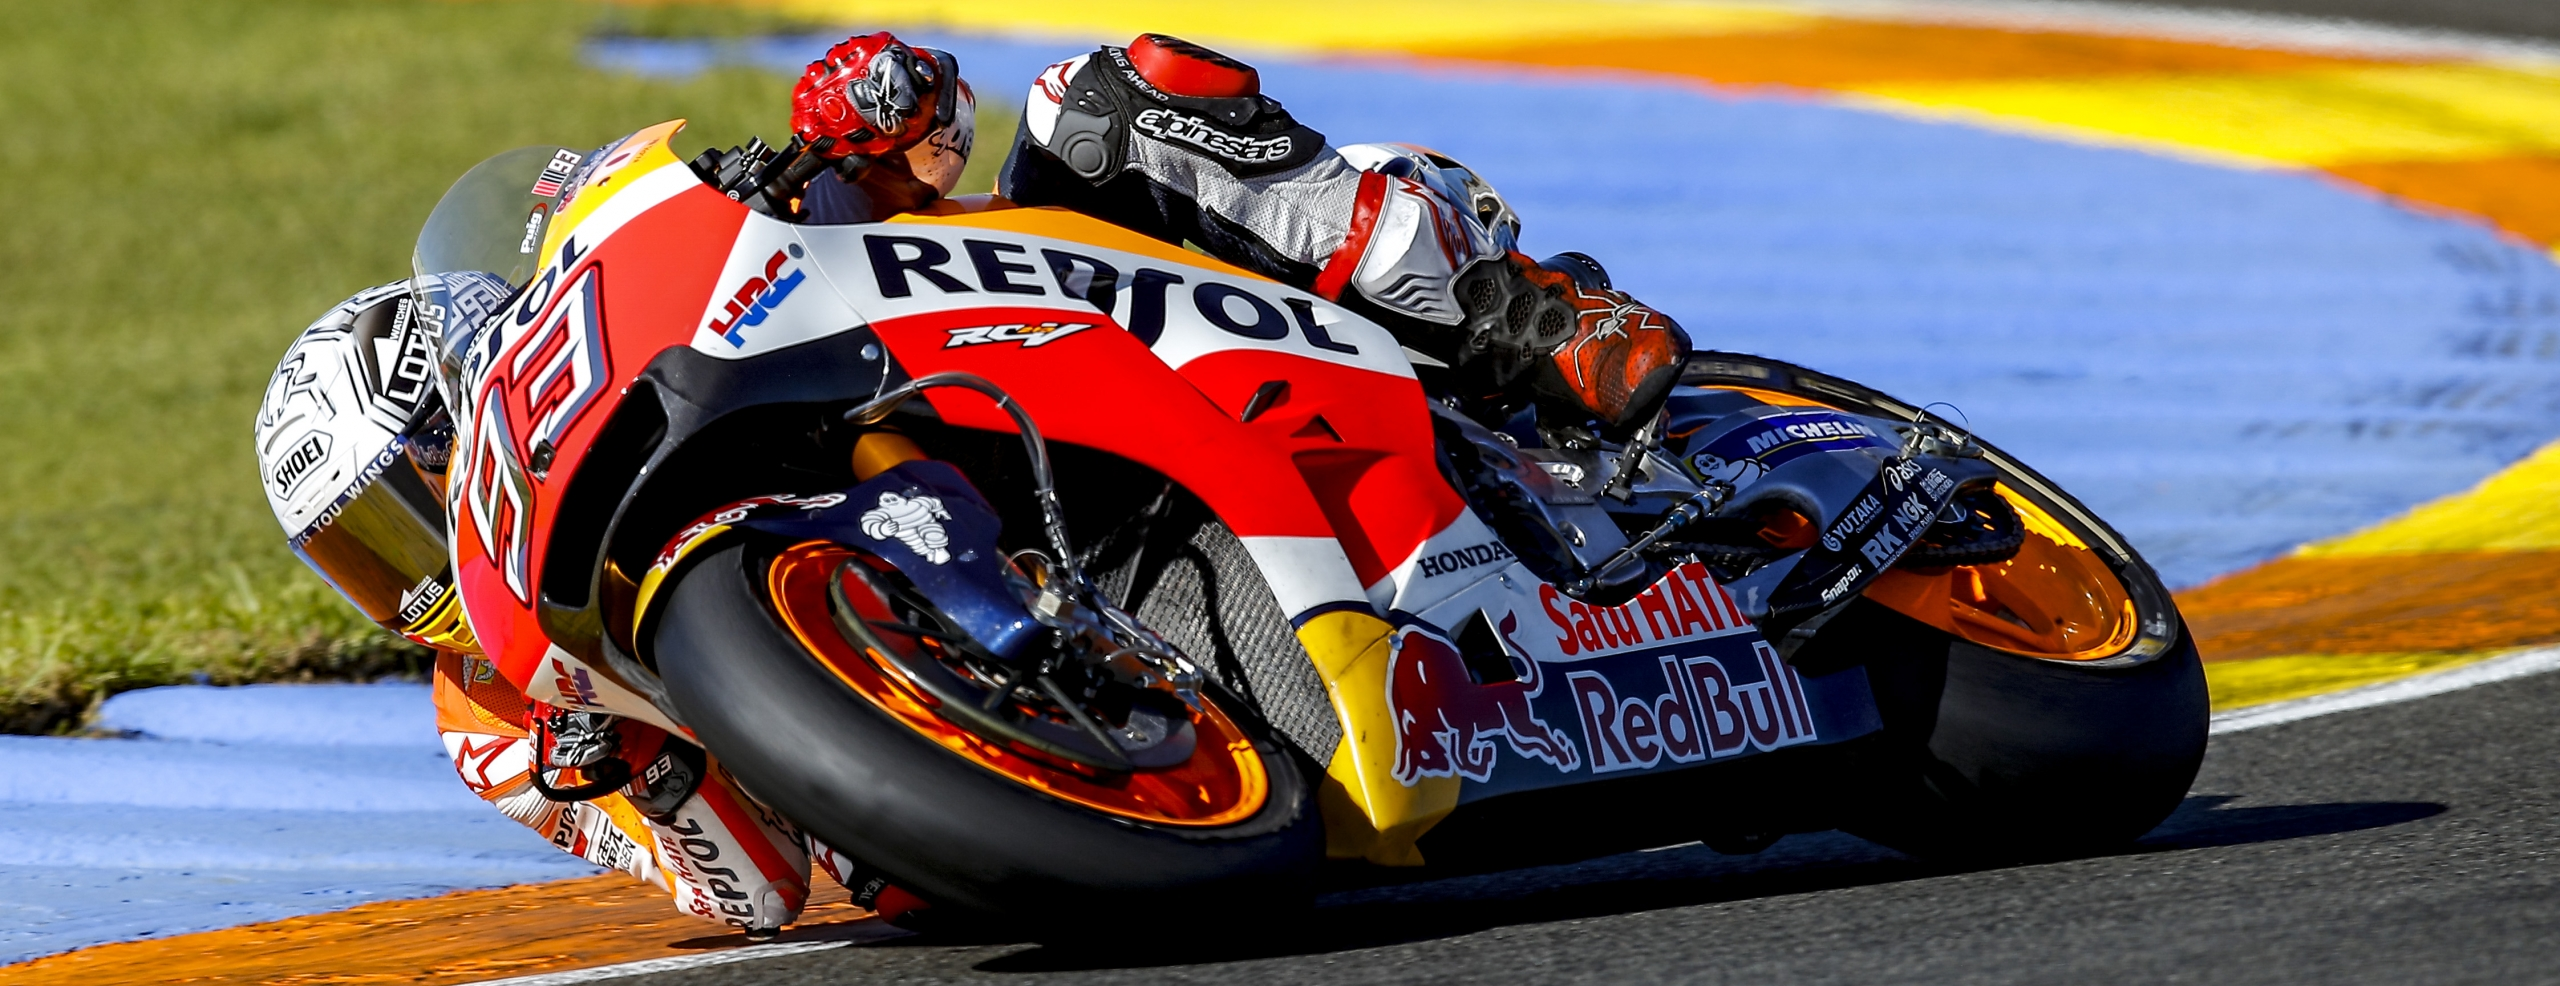 Positive end of Valencia test for Marquez in 2nd place and Pedrosa in 5th